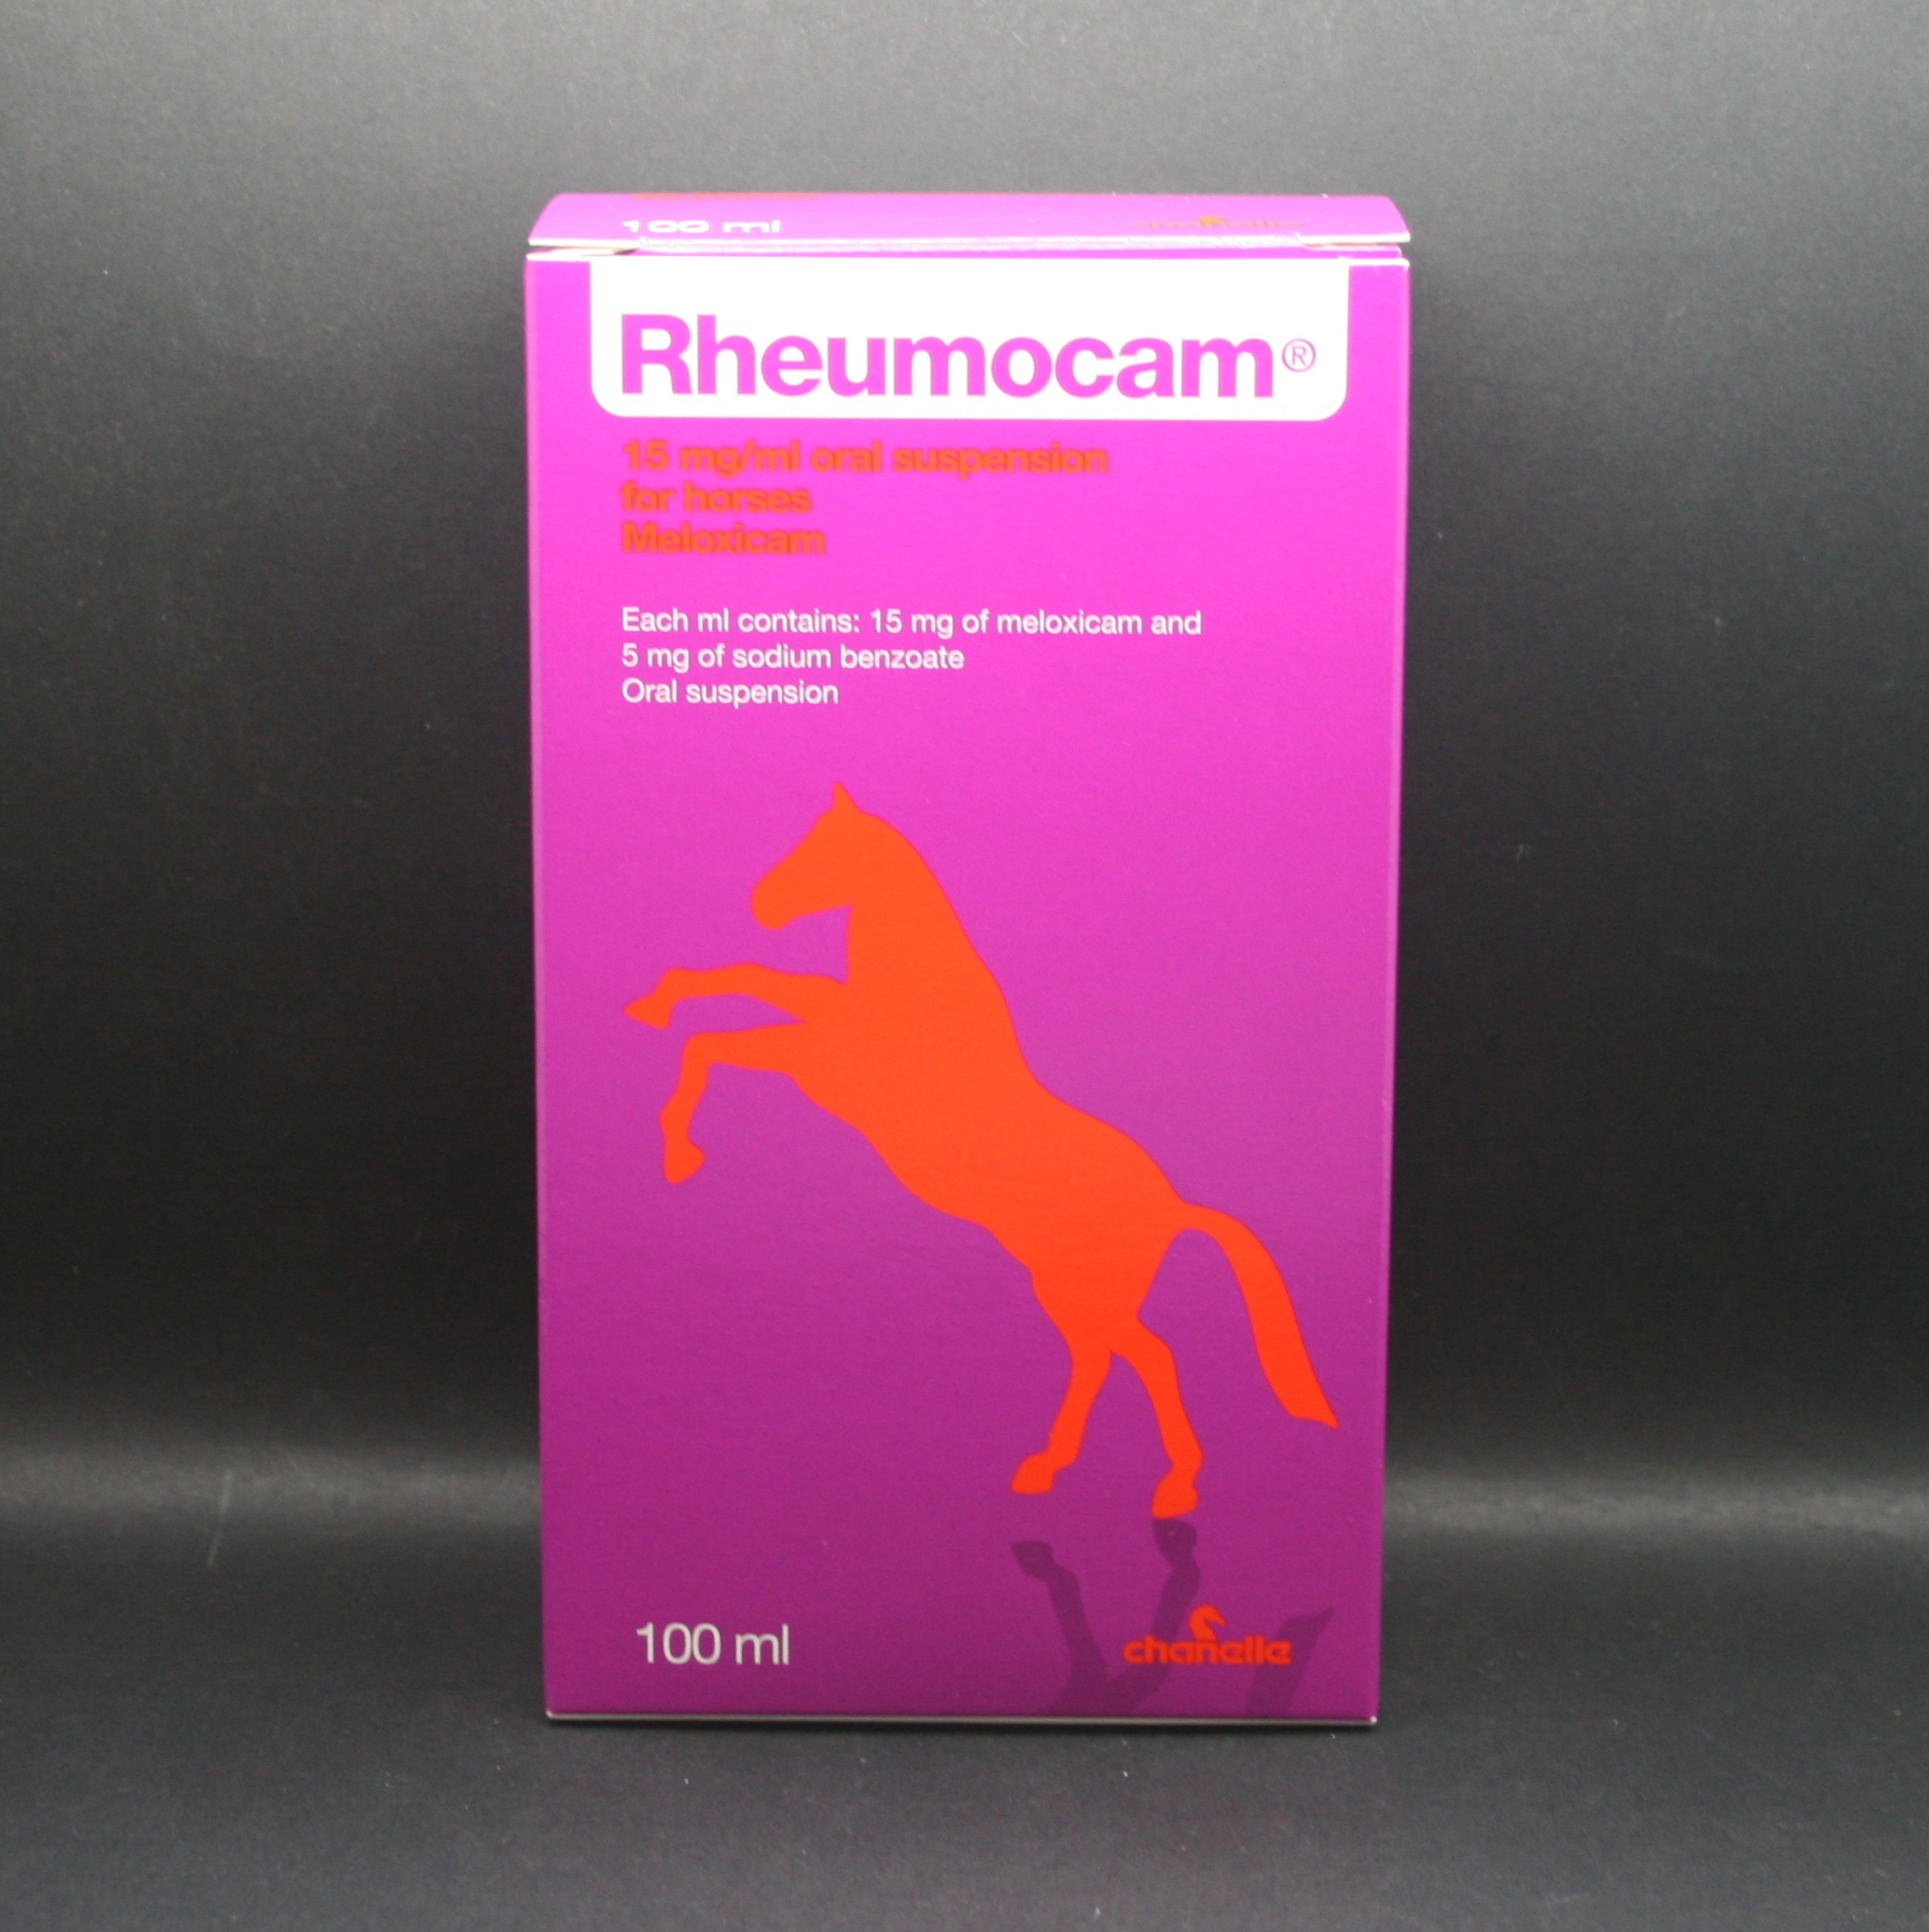 Rheumocam 15mg/ml Oral Suspension for Horses